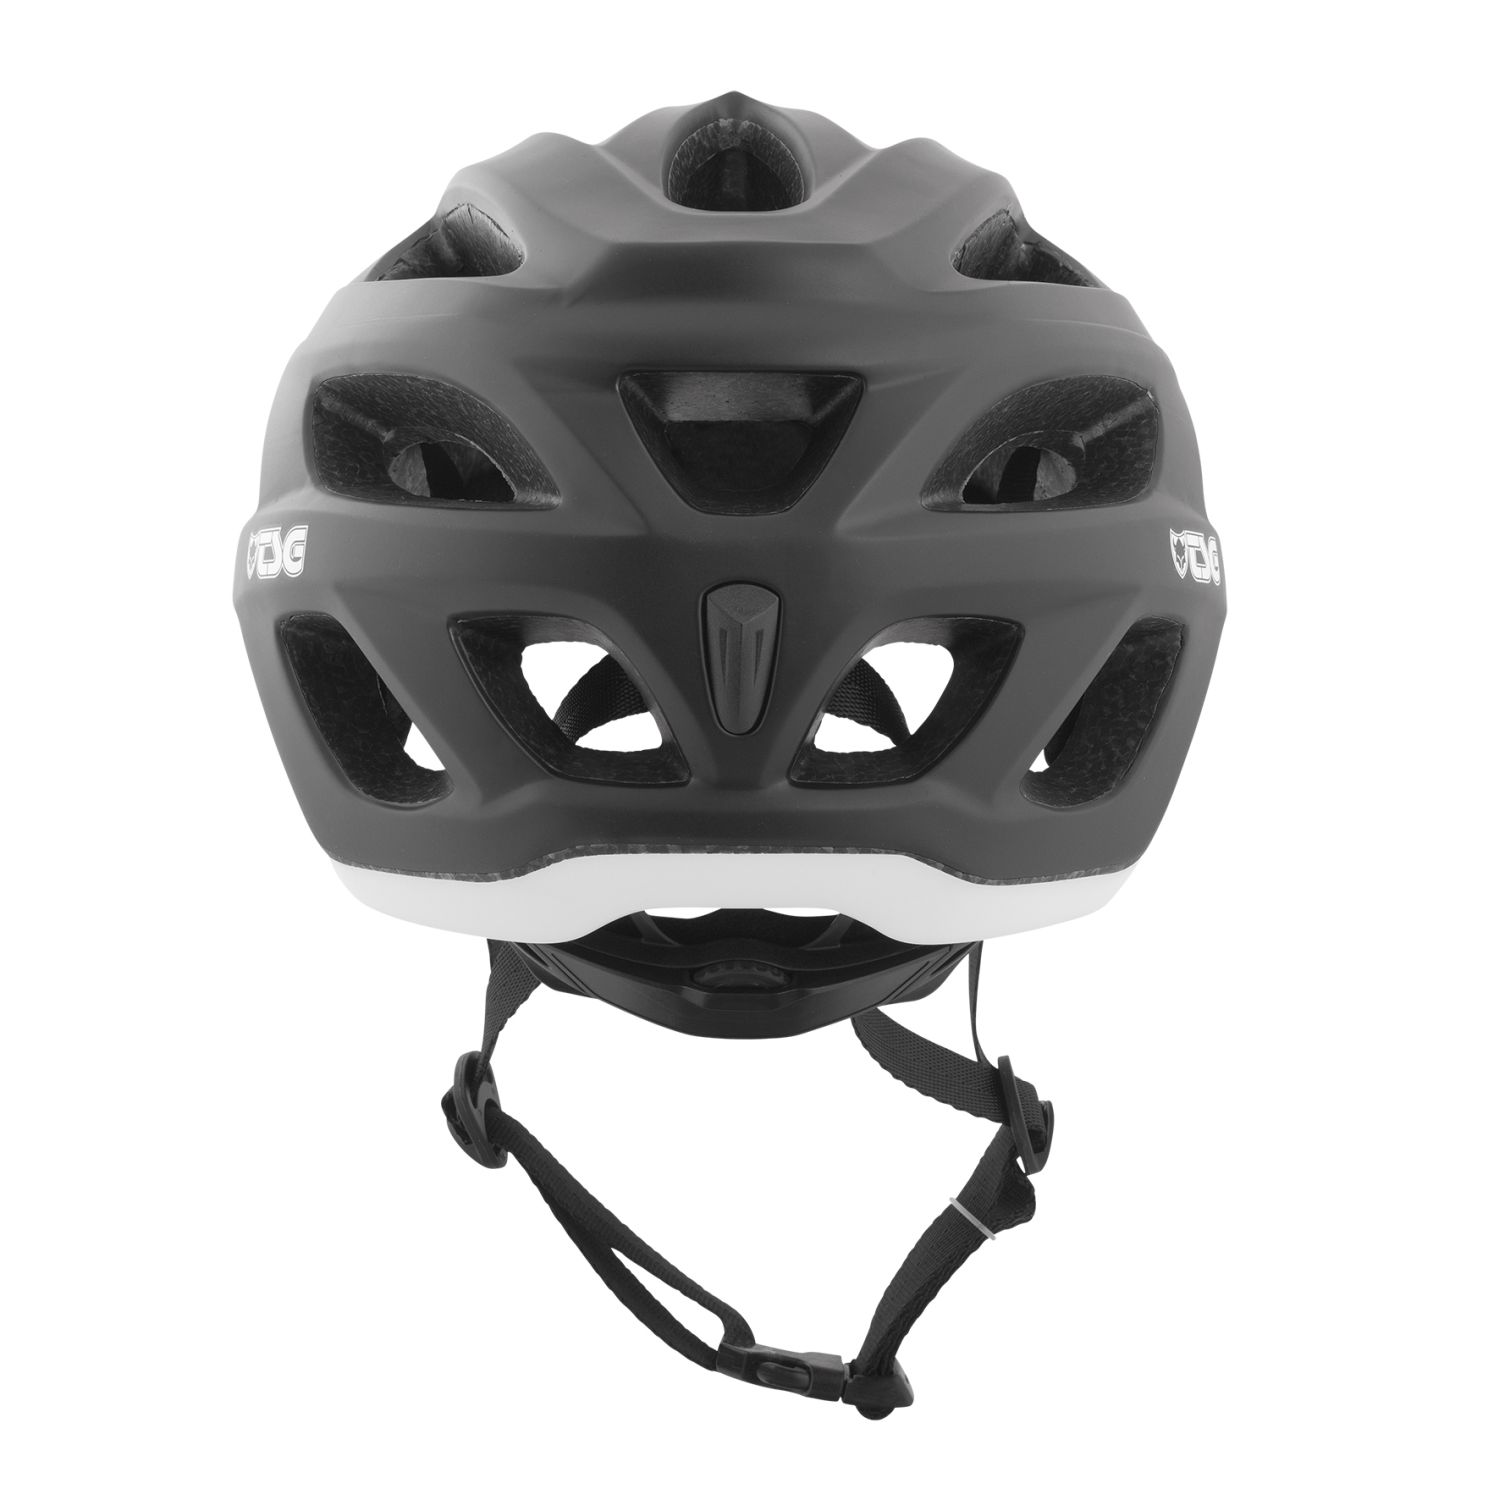 TSG Trail-MTB negro casco substance 3.0 satén negro Trail-MTB c83576